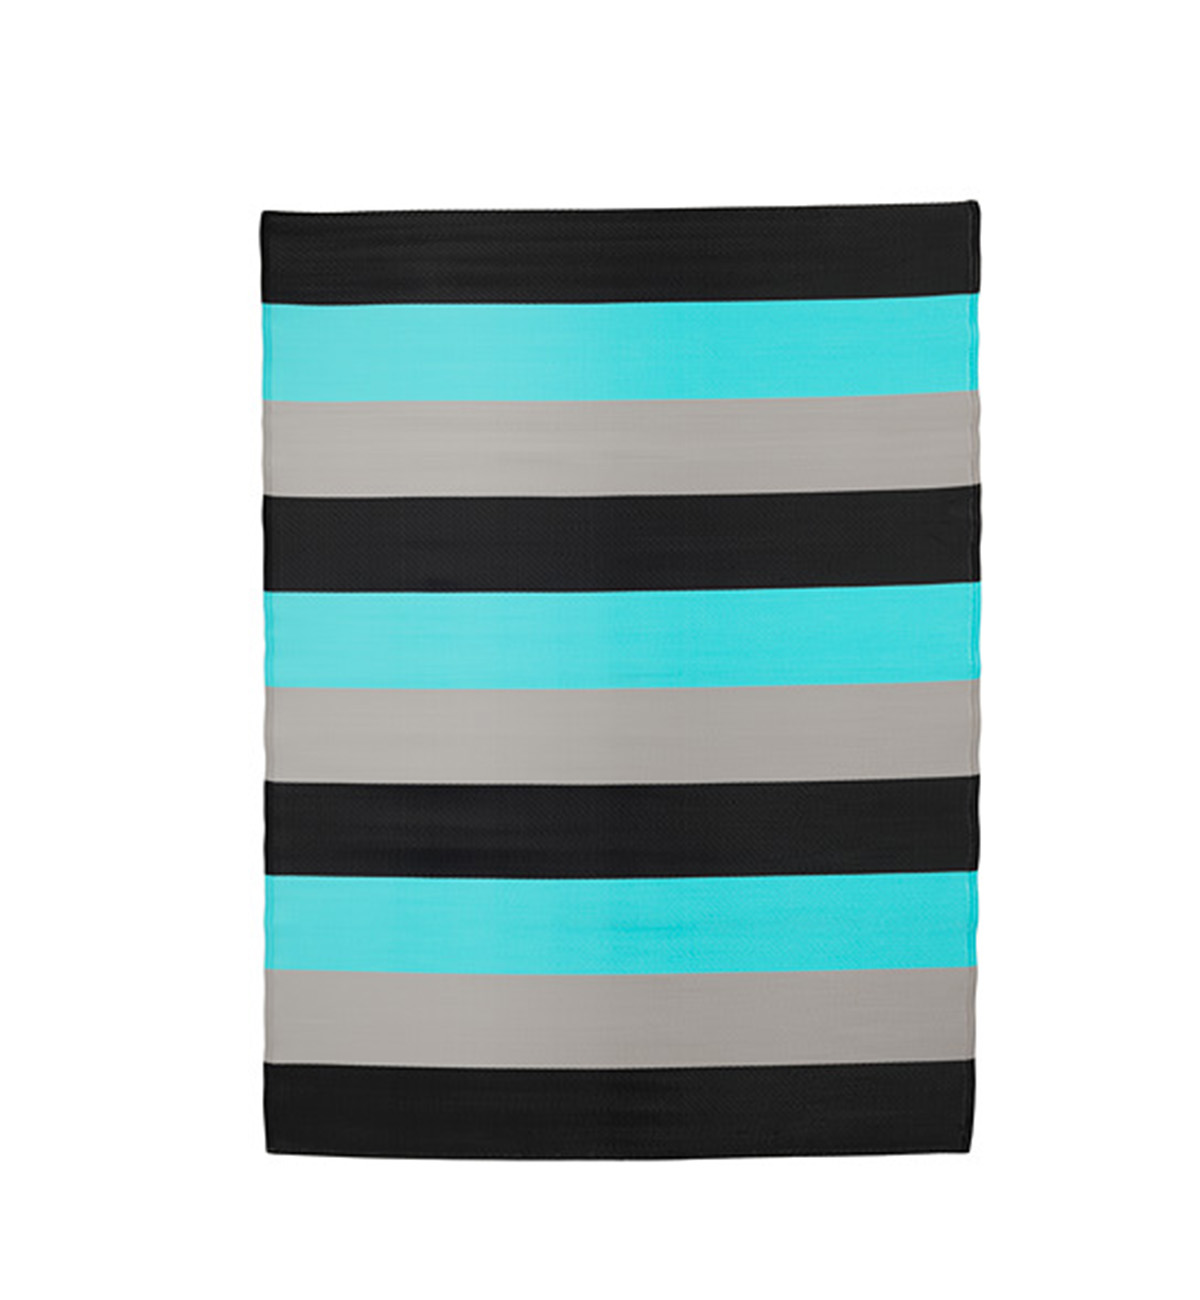 Sommar Striped Rug blue and black